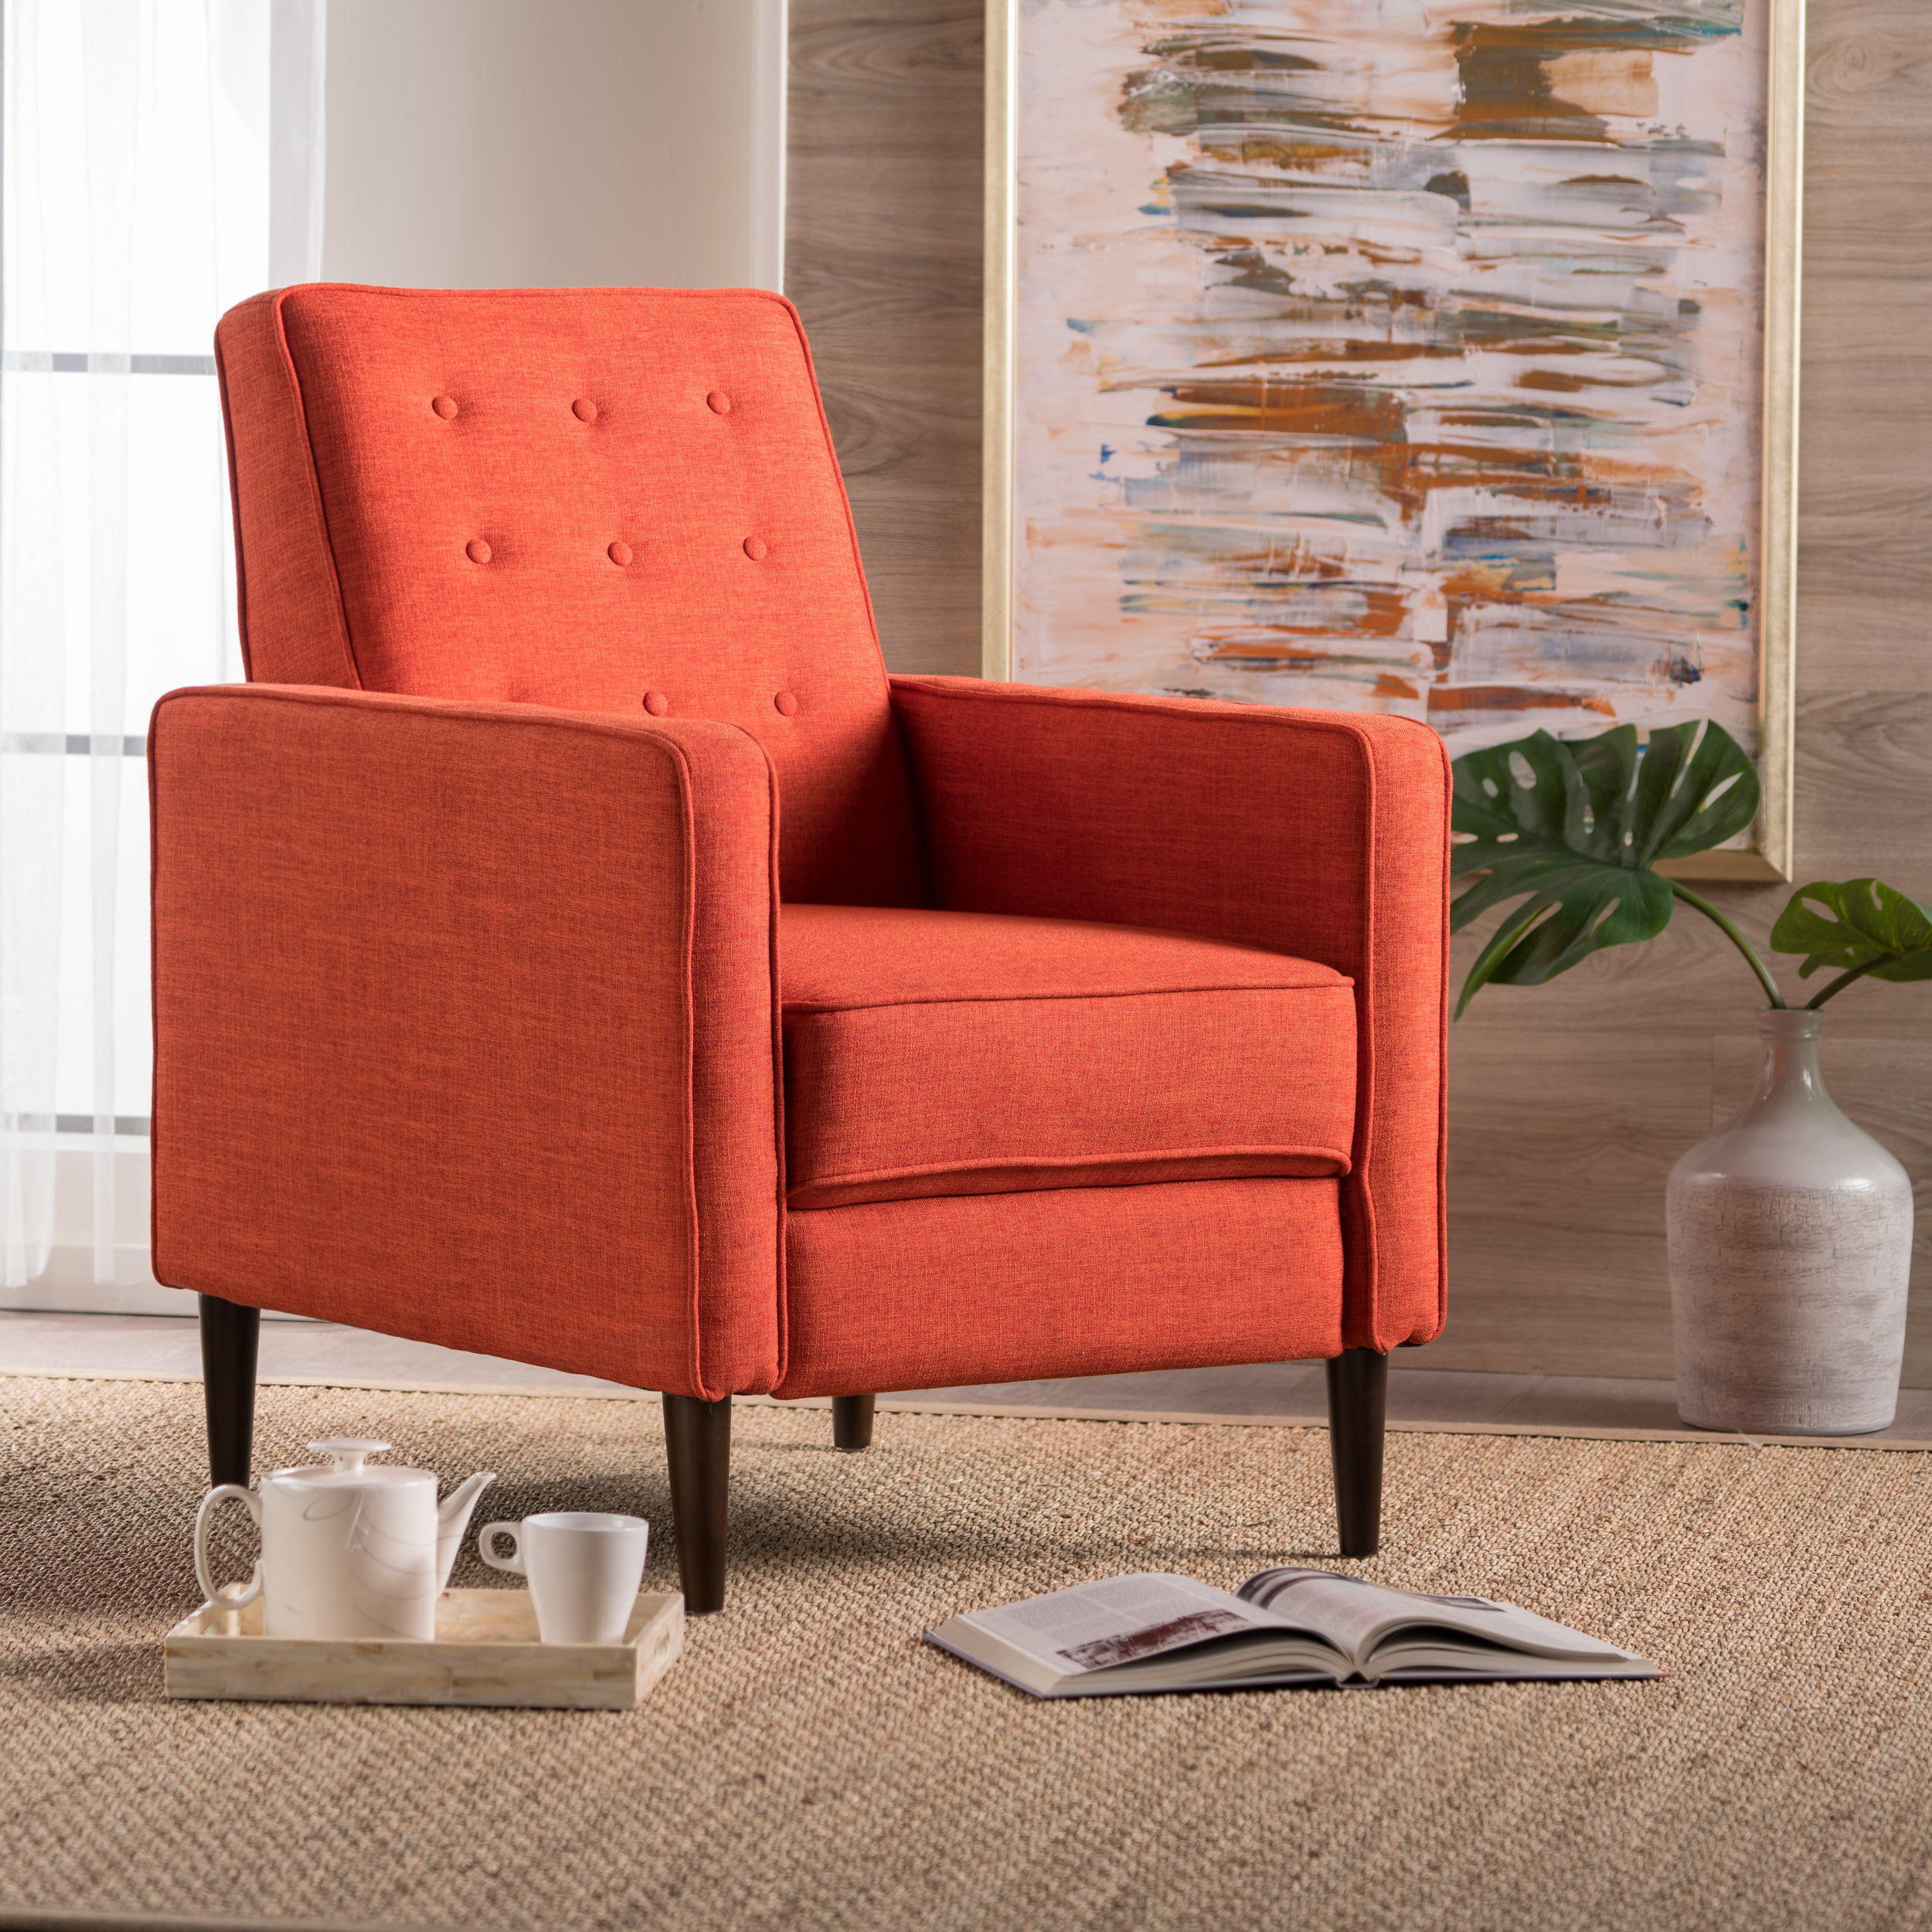 Noble House Caden Mid Century Modern Tufted Fabric Recliner, Muted Orange